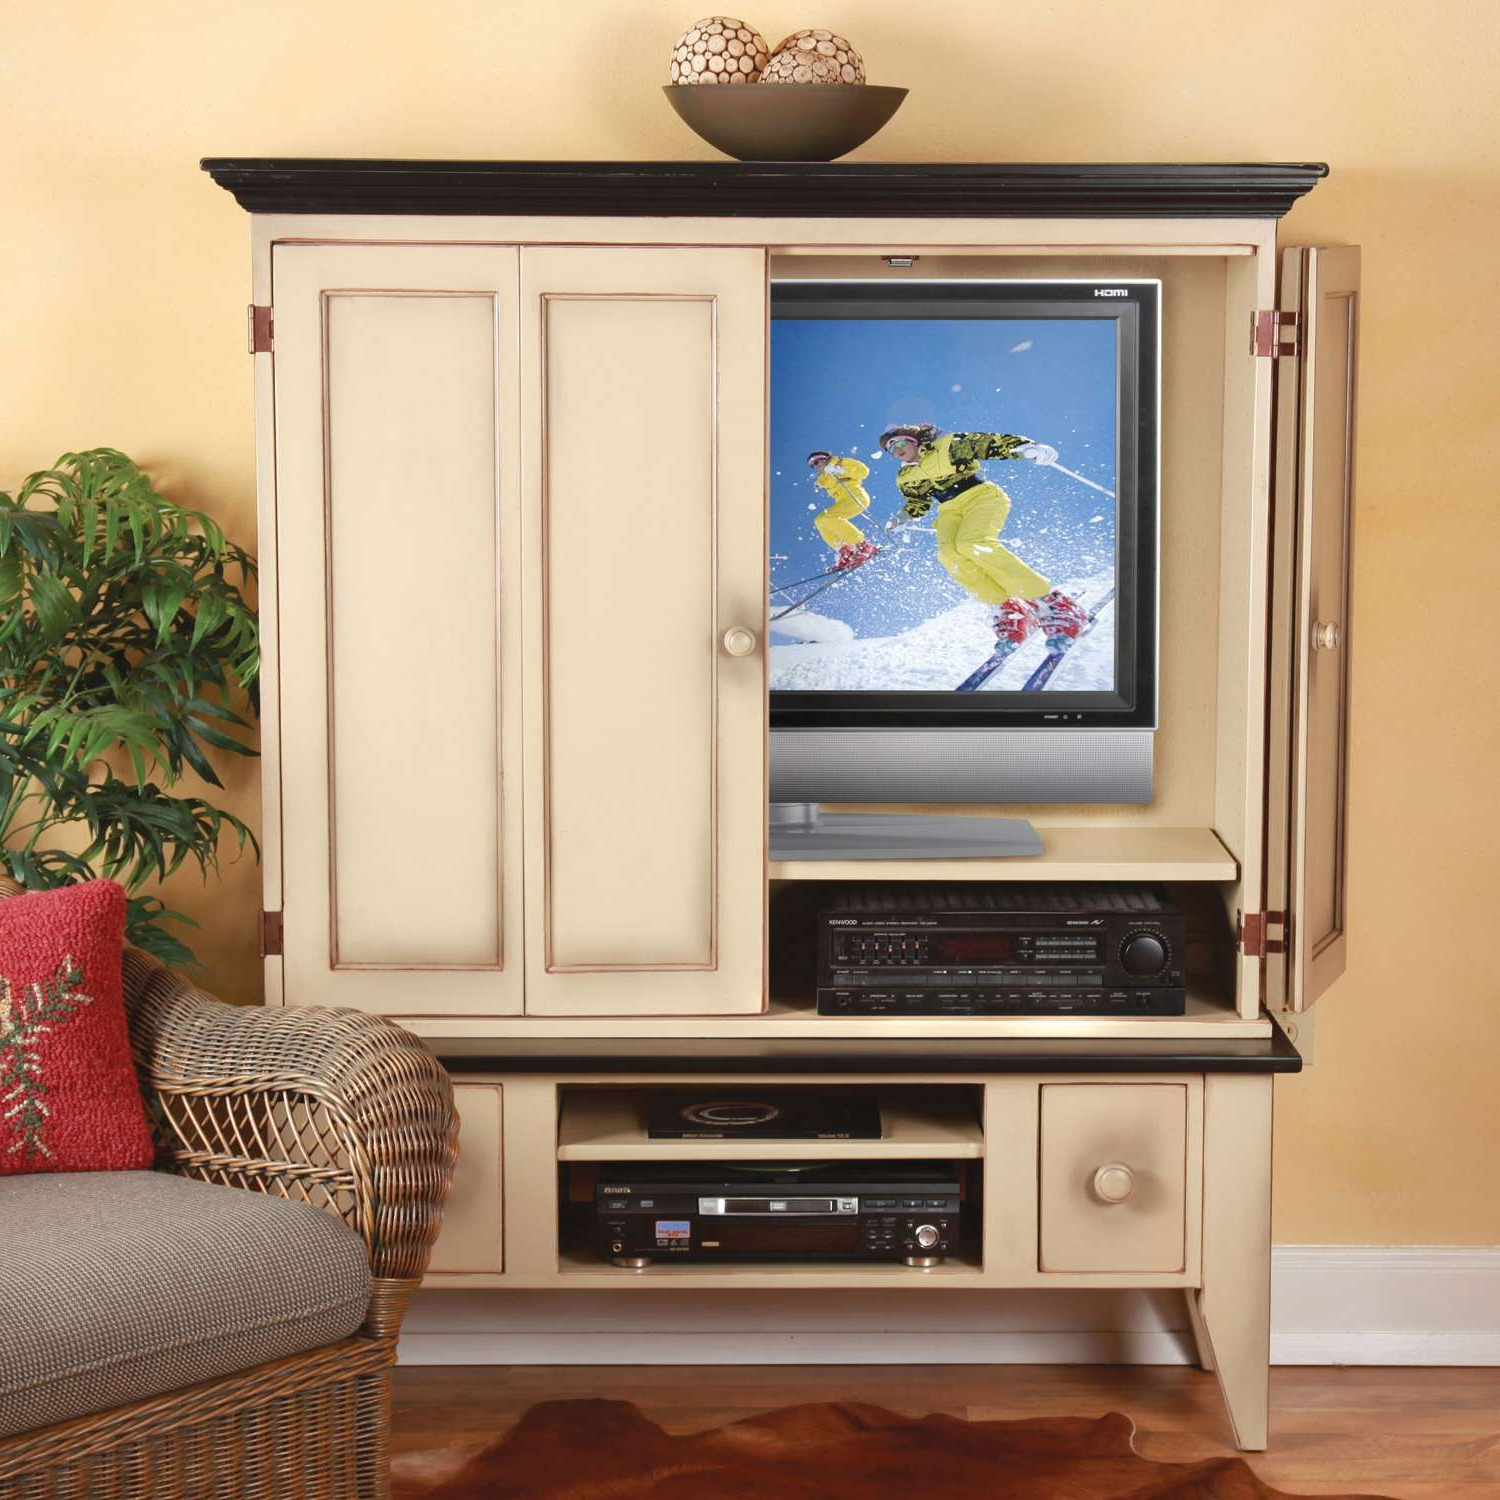 Enclosed Tv Cabinets With Doors Pertaining To Fashionable Enclosed Tv Cabinets With Doors – Image Cabinets And Shower Mandra (Gallery 2 of 20)